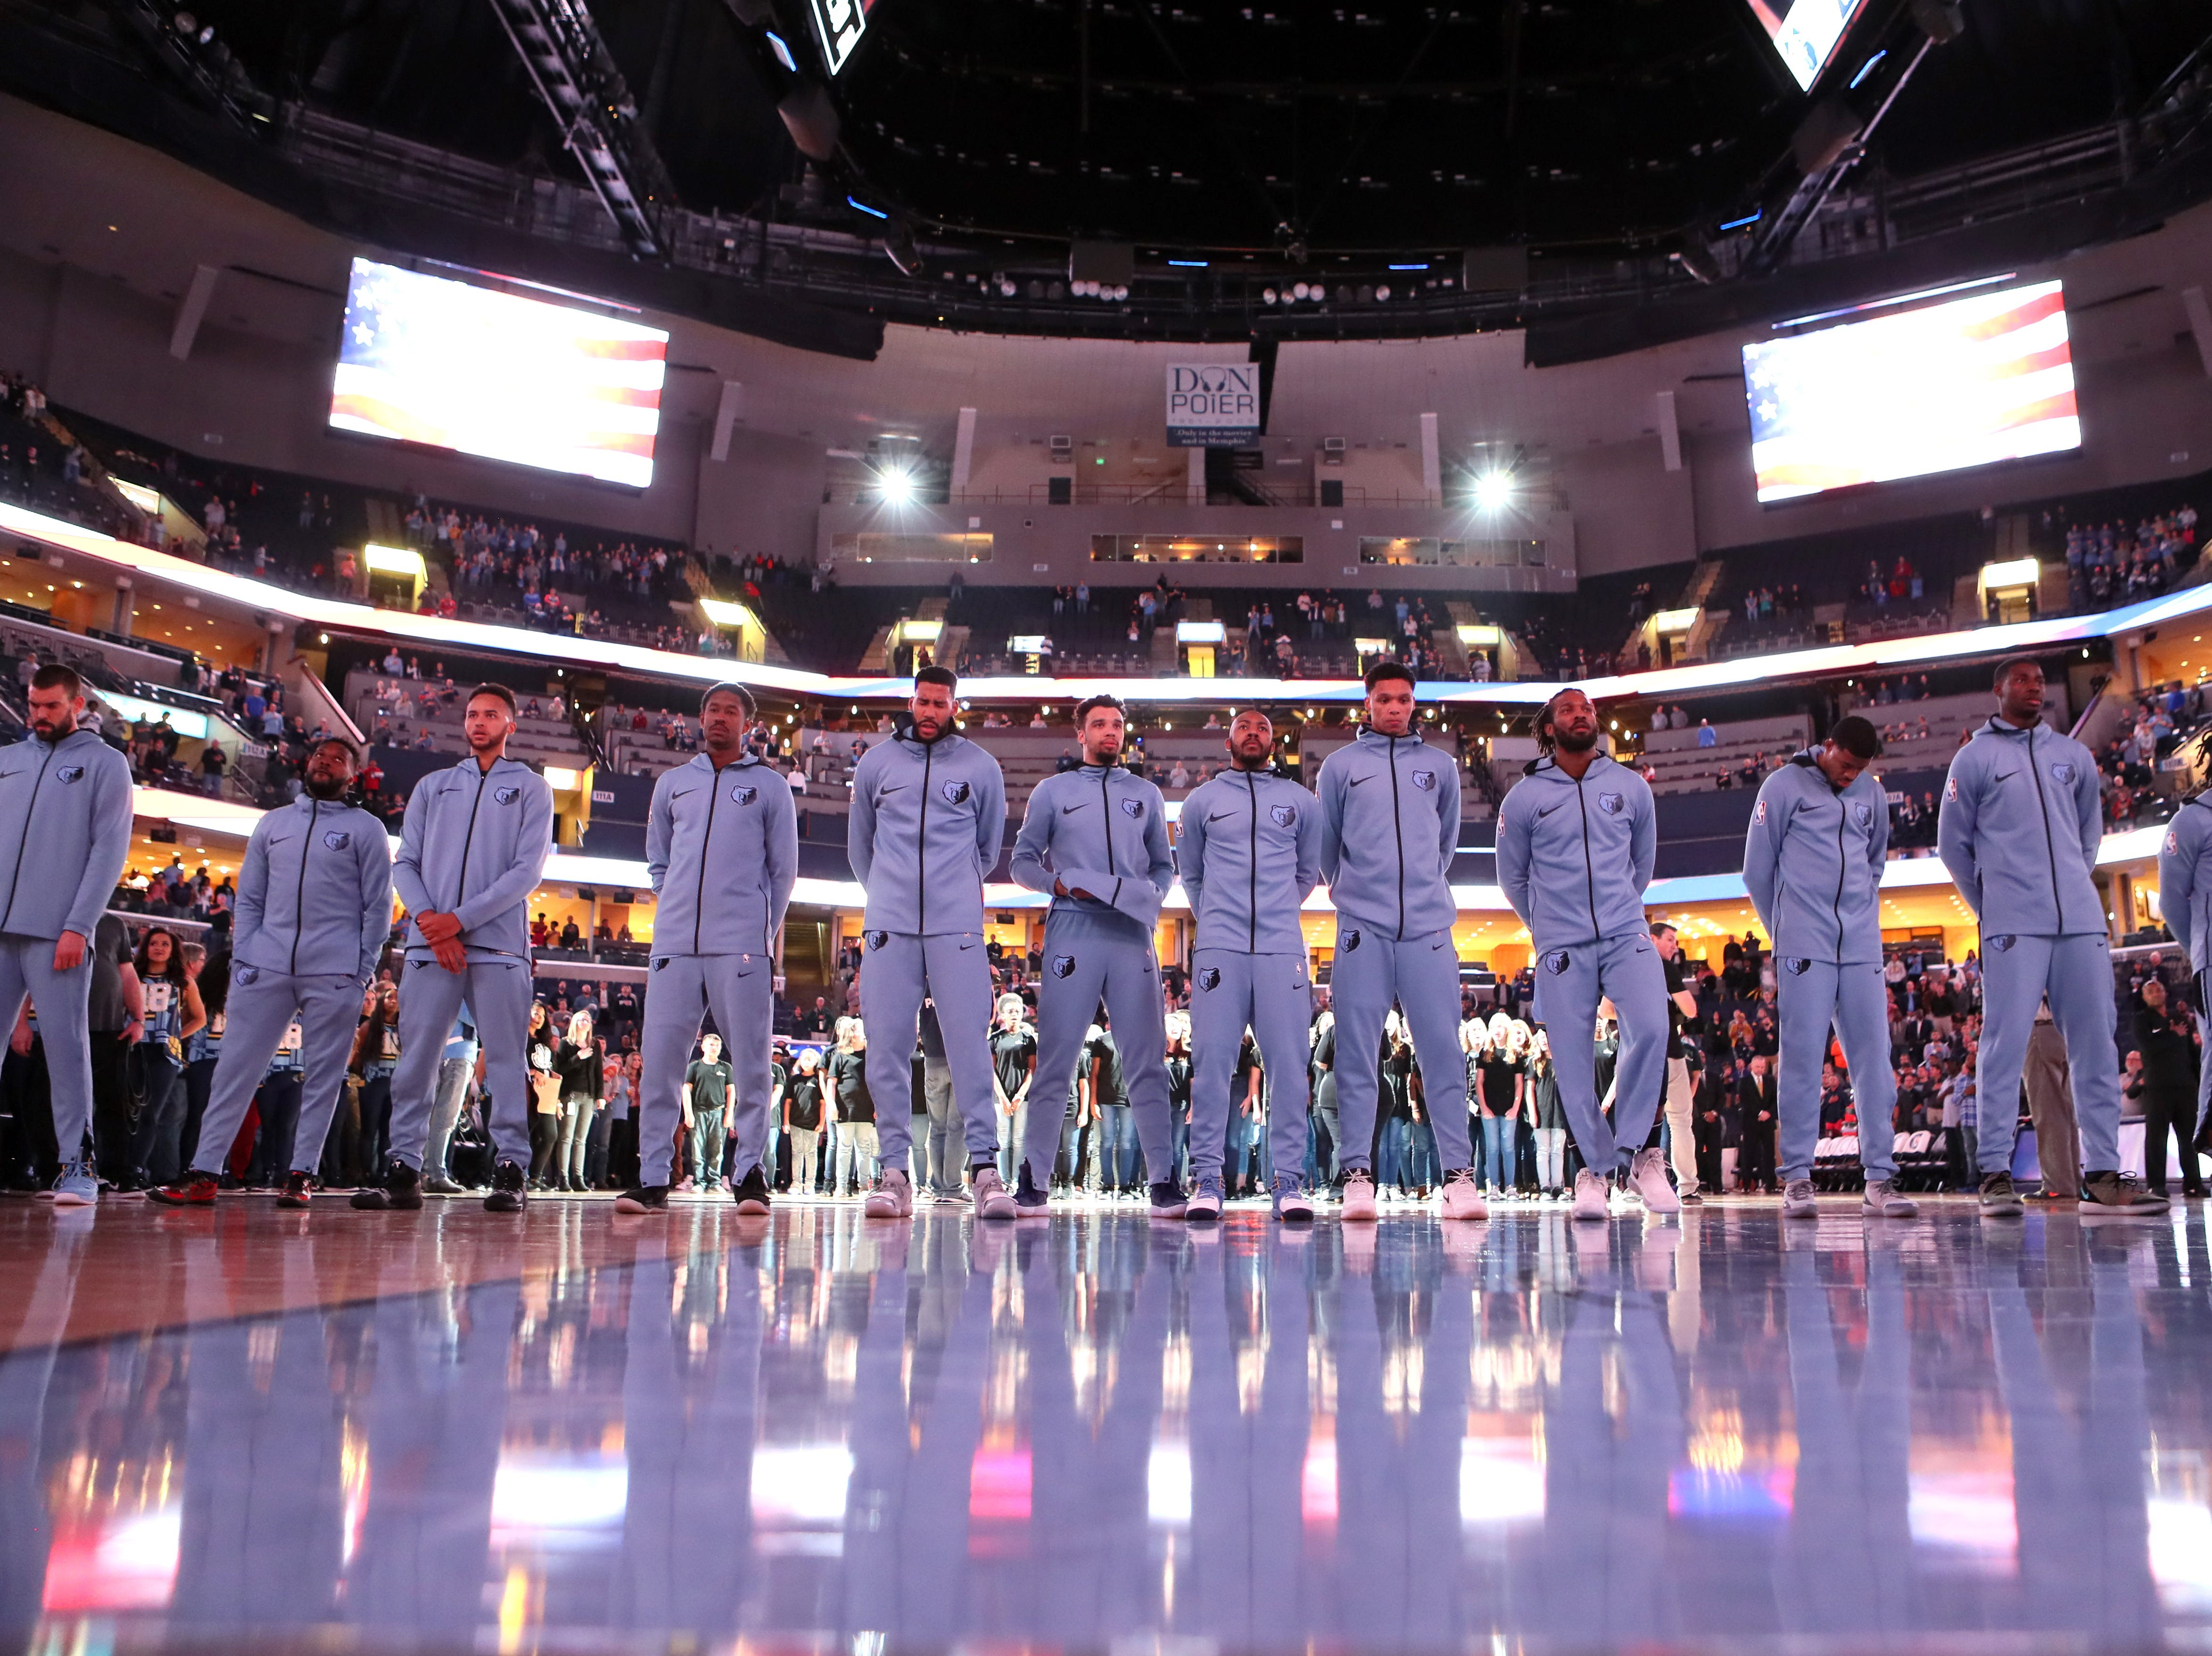 Memphis Grizzlies players stand for the National Anthem before their game against the Denver Nuggets at the FedExForum on Wednesday, November 7, 2018.